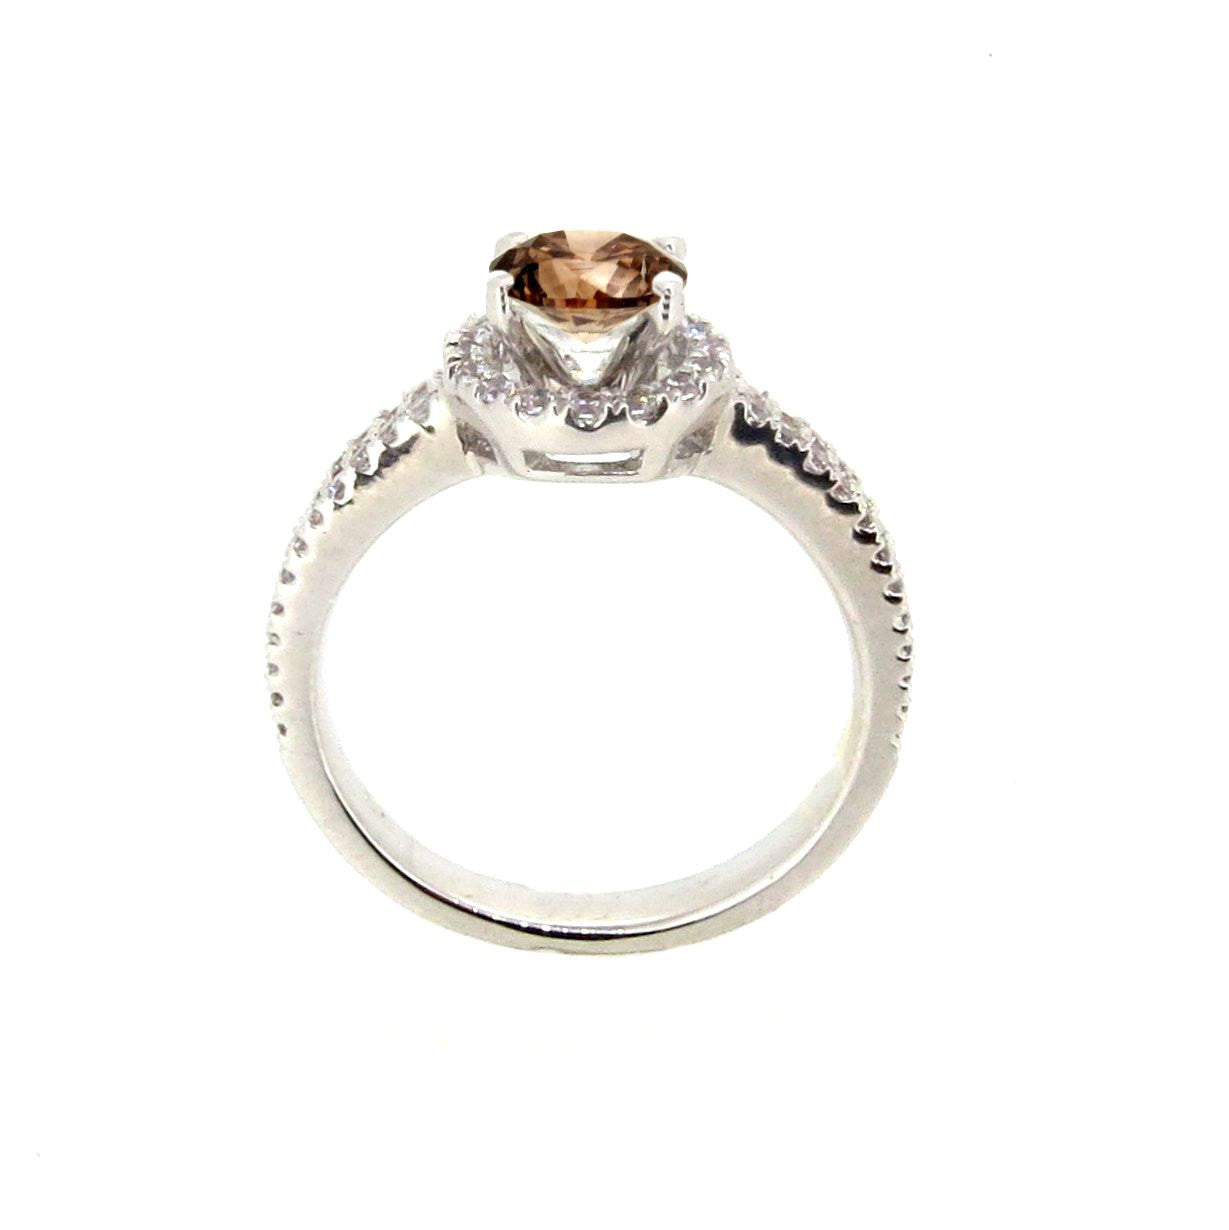 Floating Halo Engagement Ring, 1 Carat Fancy Brown Diamond Center Stone with Diamond Accent Stones, Anniversary Ring - BD85034